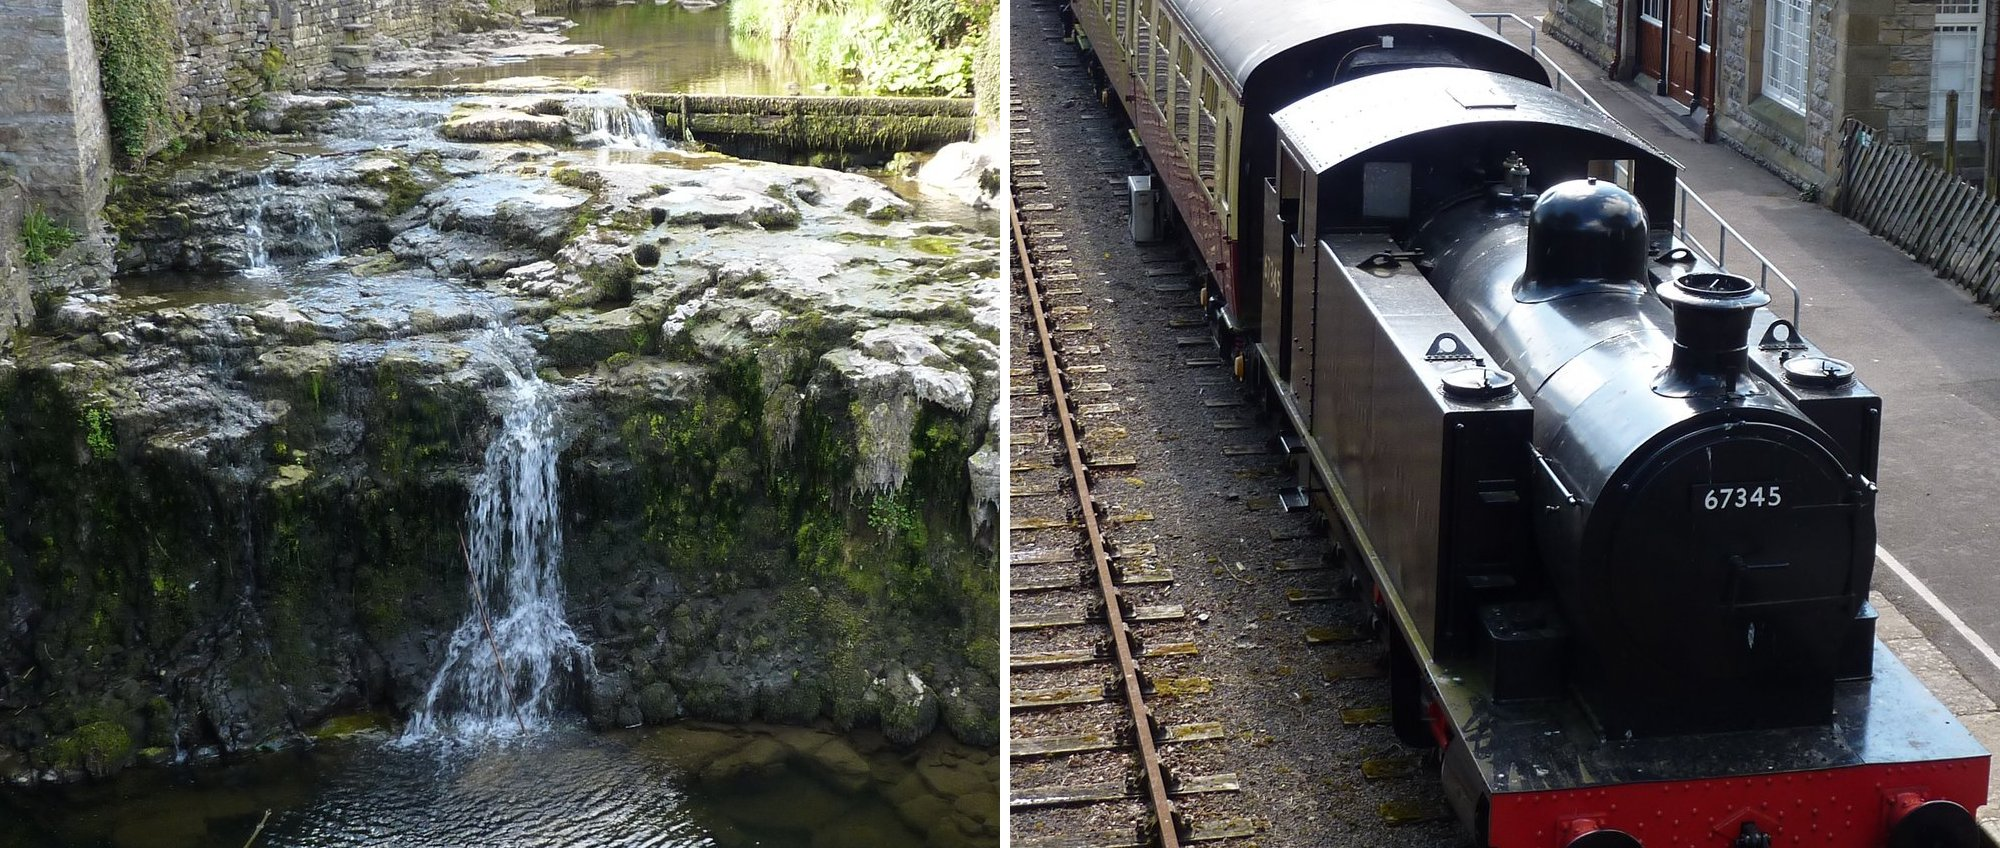 No water in the falls at Hawes and the steam train at Hawes Museum